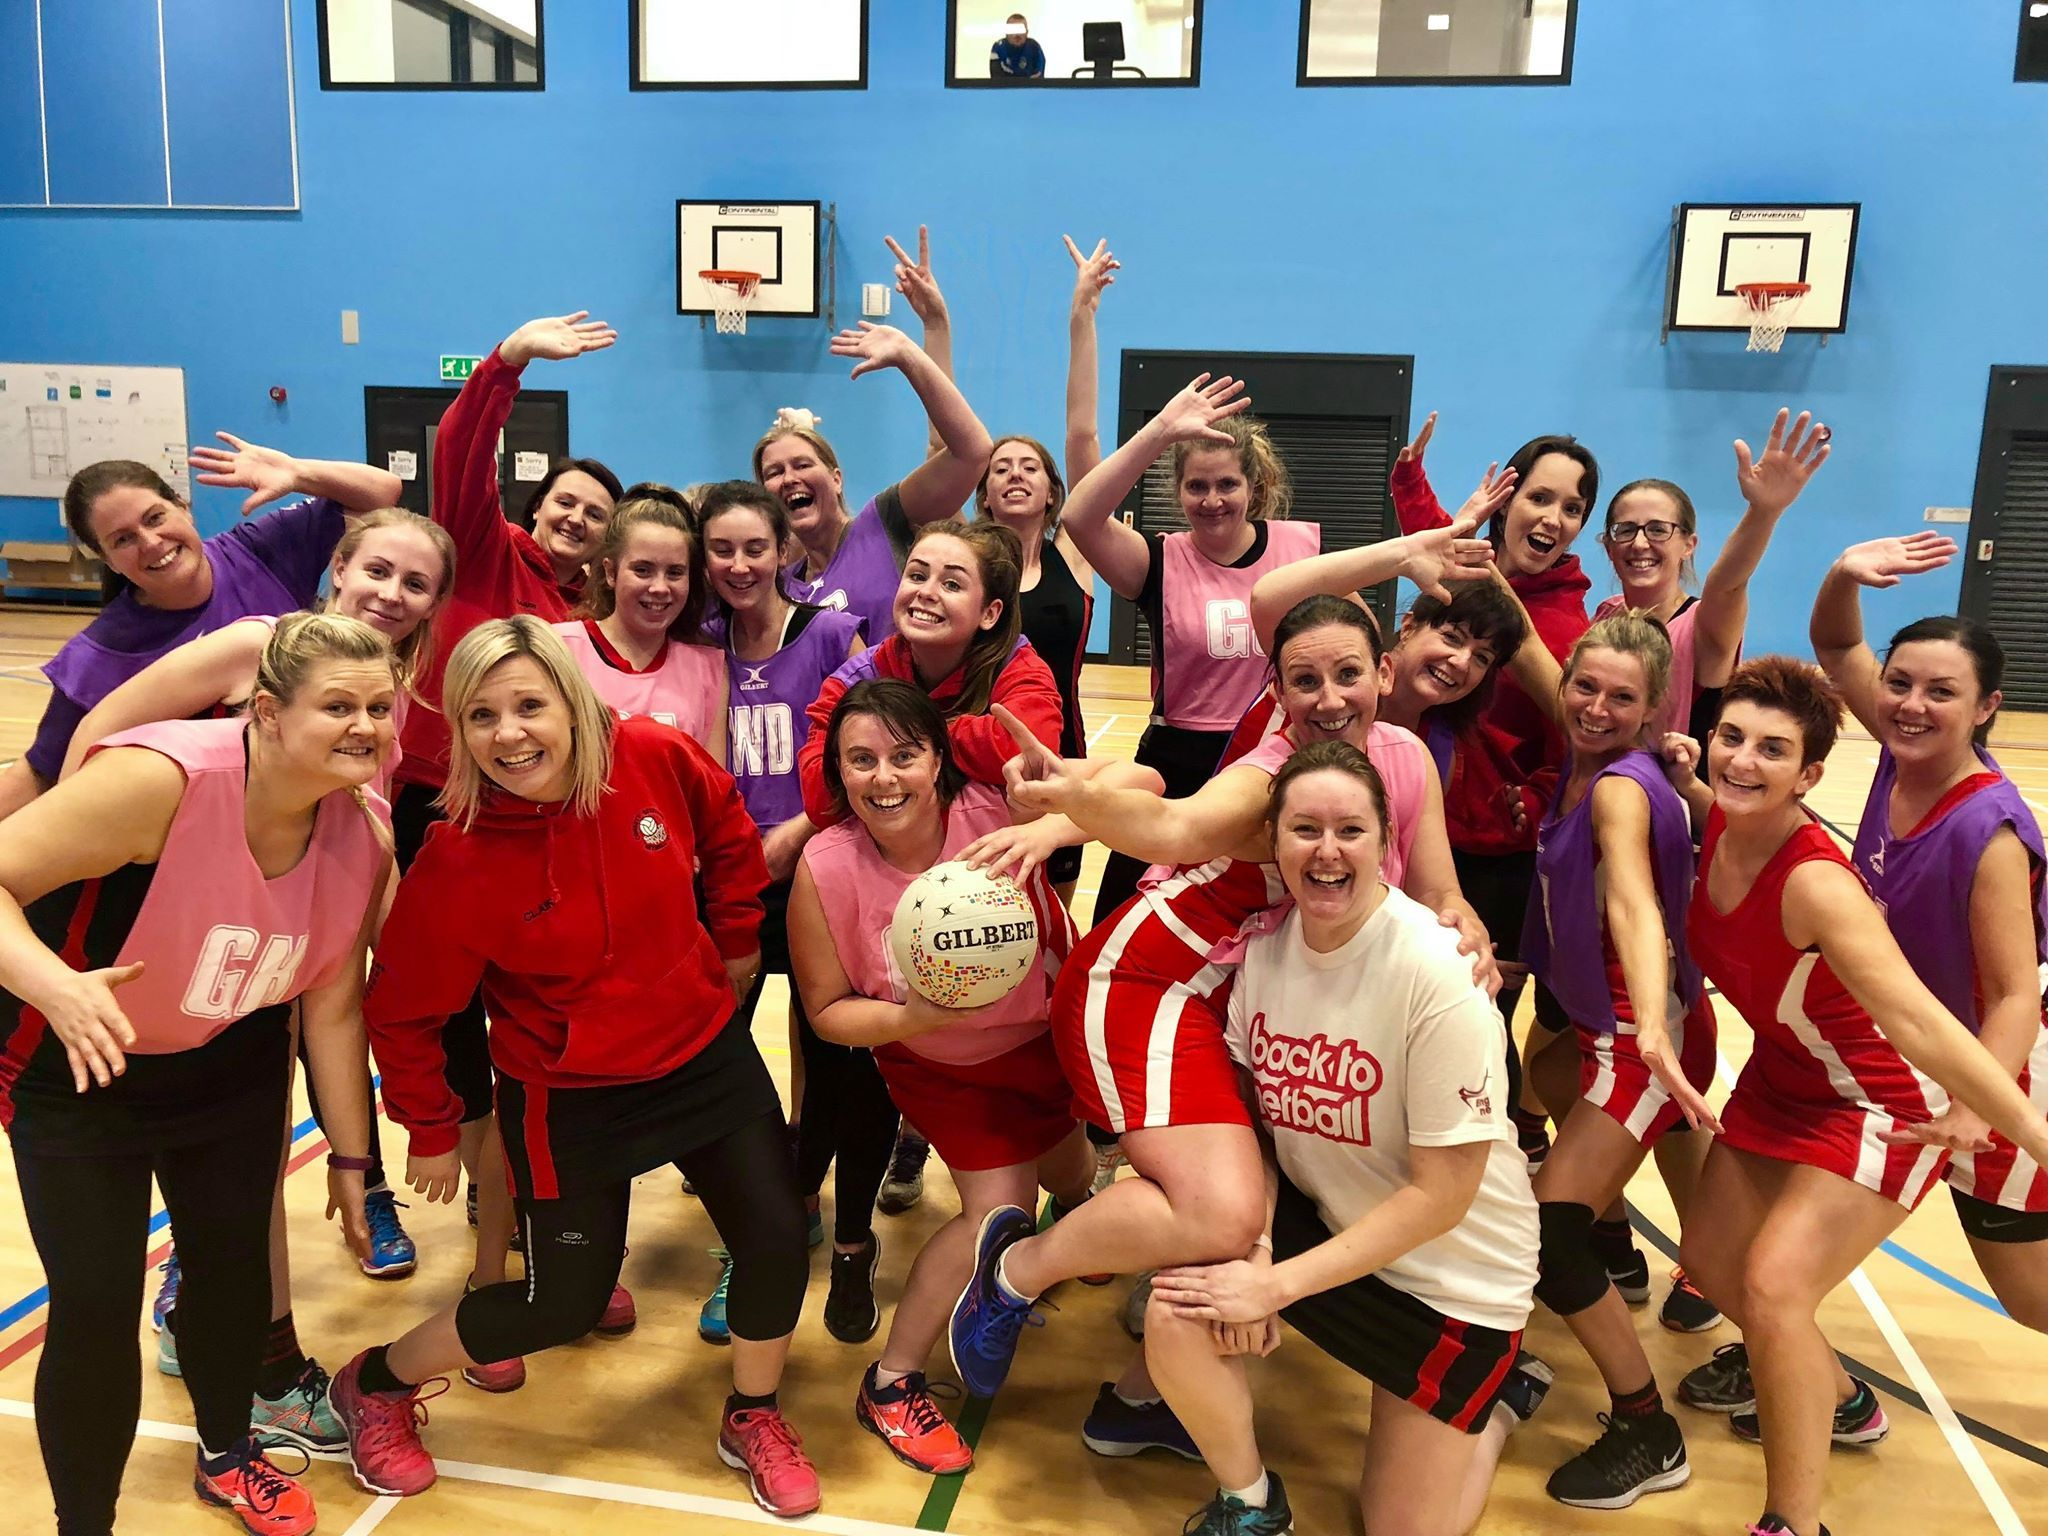 PLAY: Netballers celebrating the 10th anniversary of Back to Netball in County Durham, which has seen hundreds of women get back into the sport